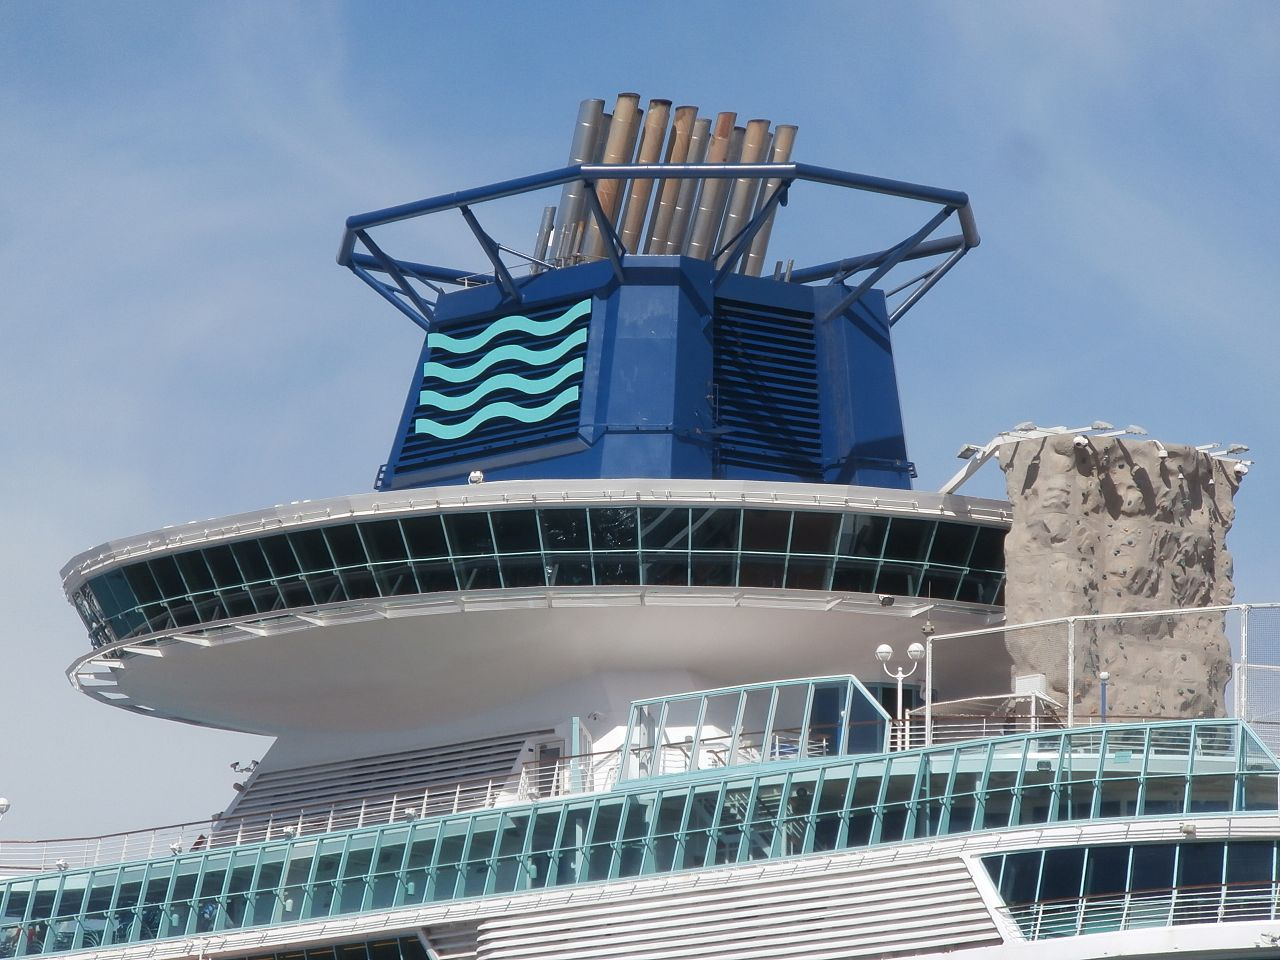 Pullmantur Cruises cruise ships for sale